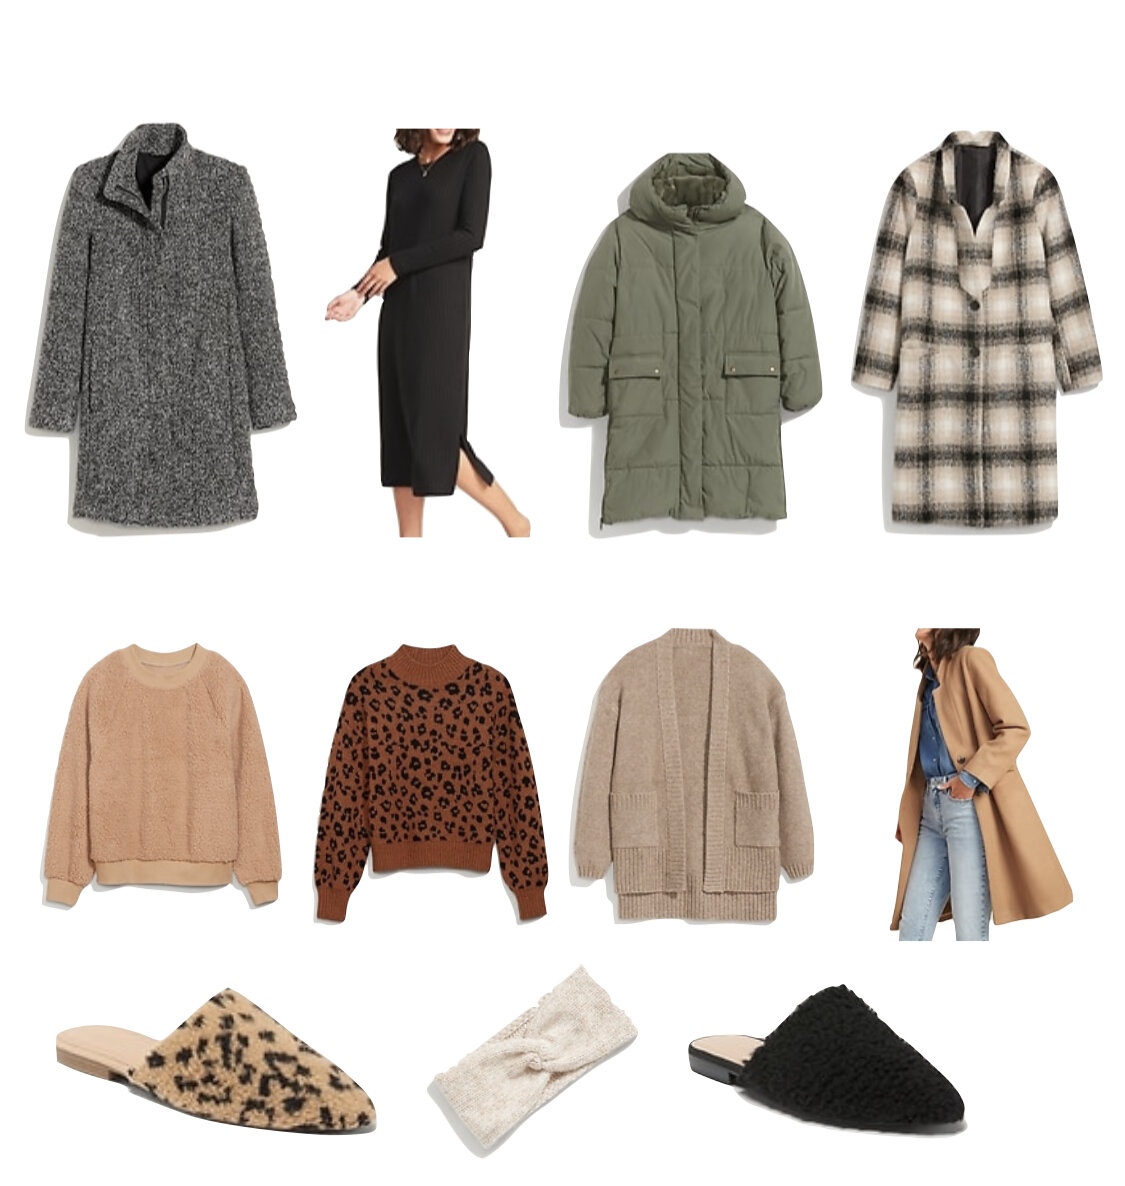 40% OFF EVERYTHING AT OLD NAVY